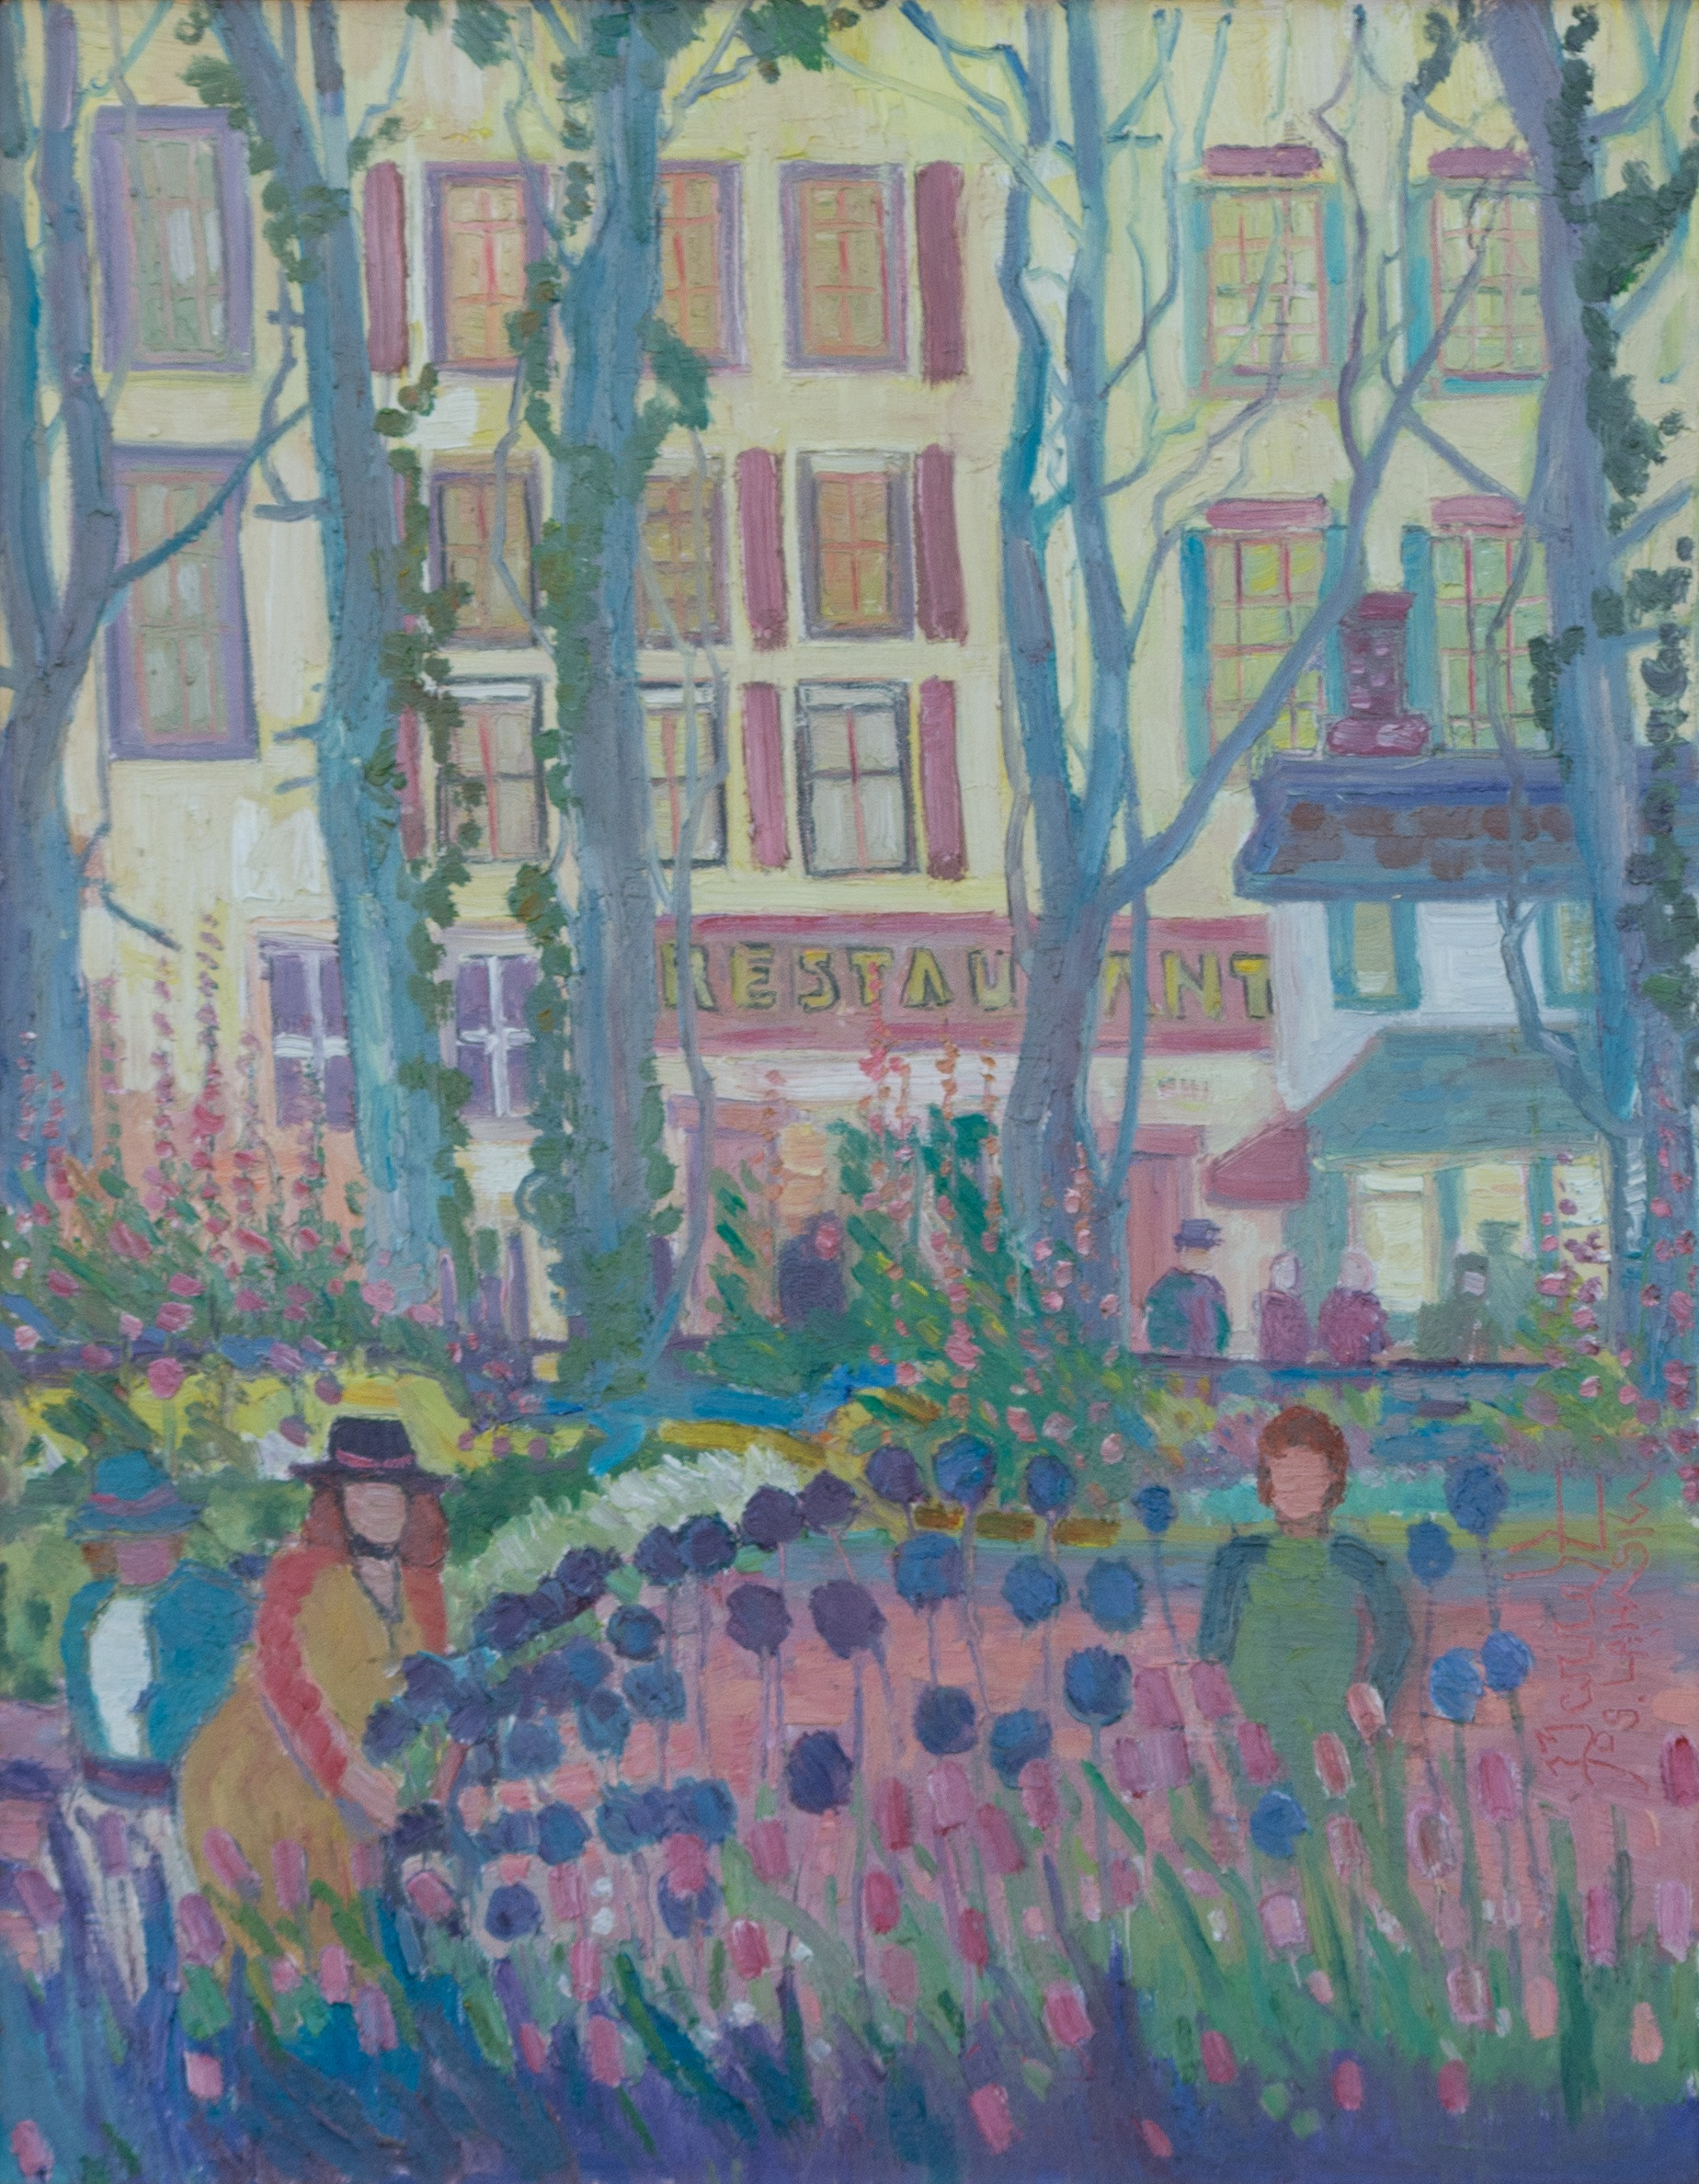 TOWN GARDEN, LAMBERTVILLE (TWO SISTERS) by Joseph Barrett - 28 x 22 in., o/c • SOLD